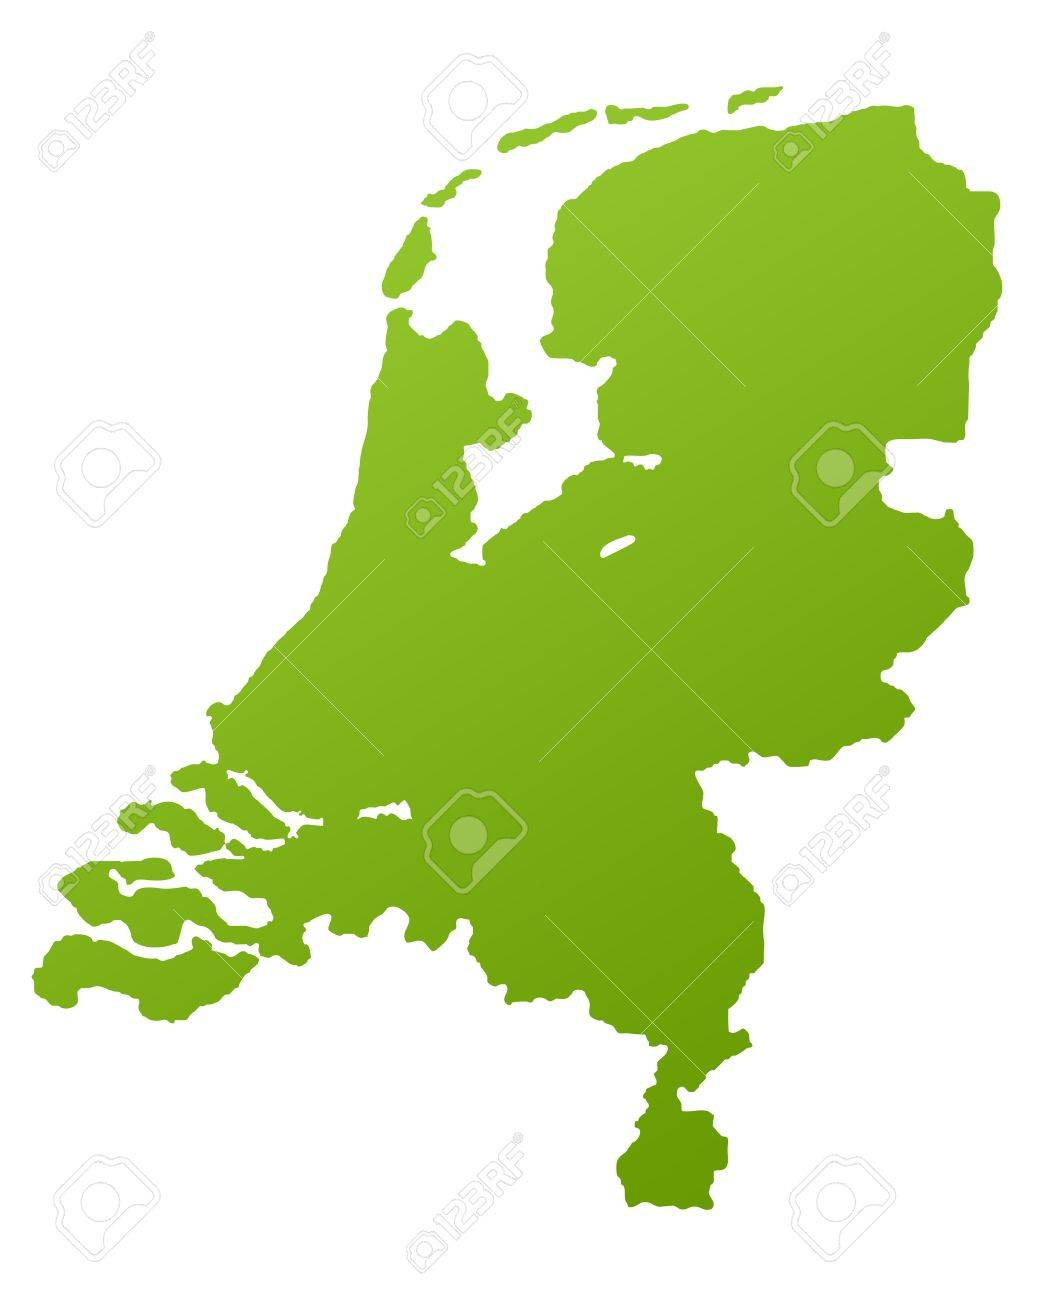 Netherlands or Holland map in green, isolated on white background. Stock Photo - 7041622